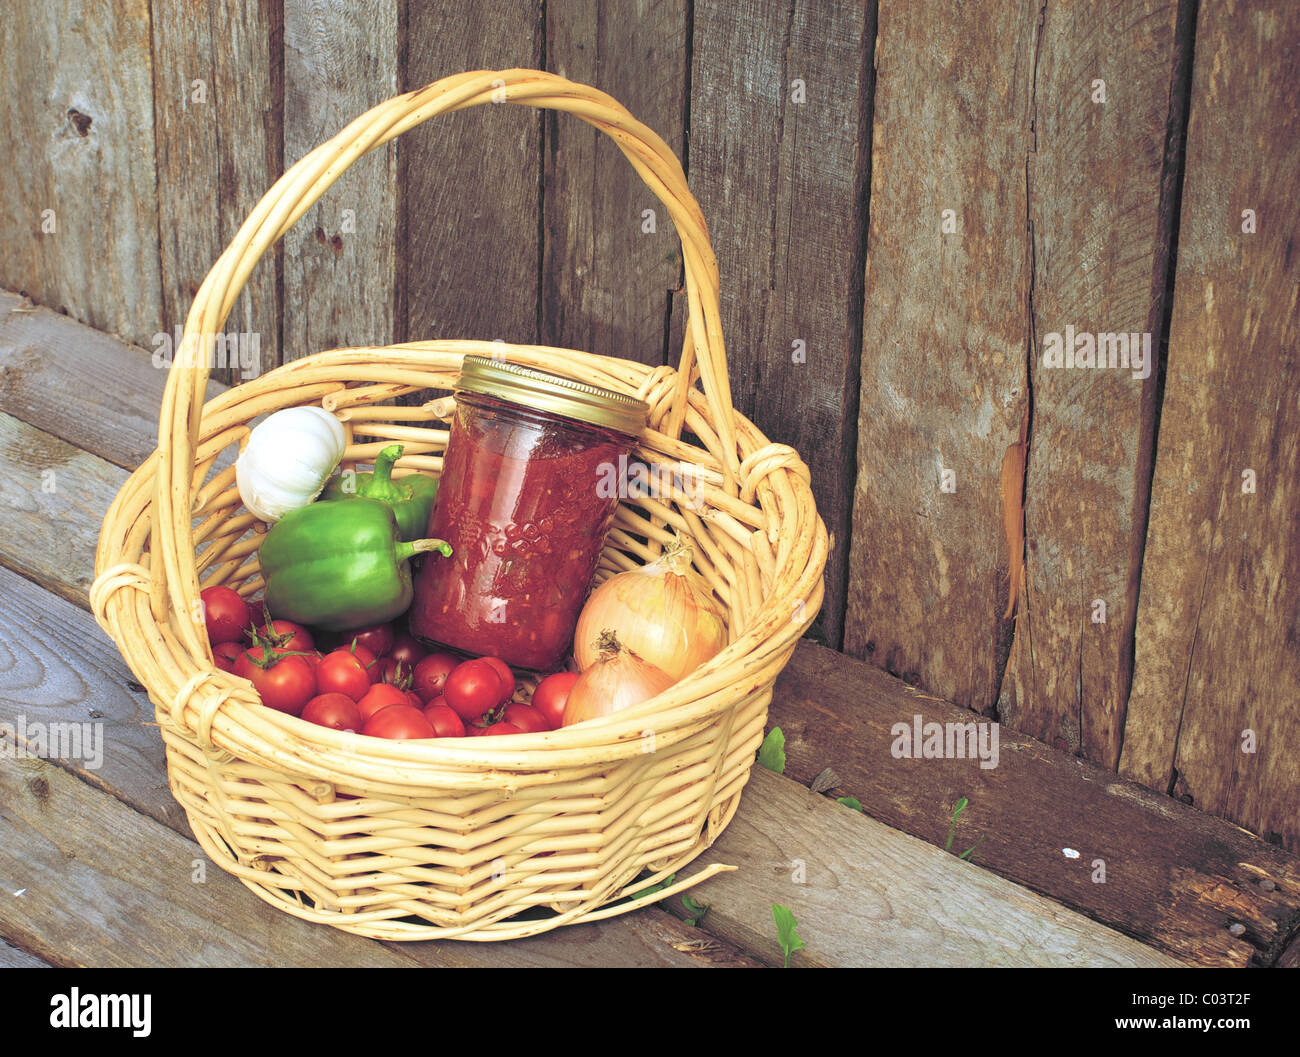 Basket of freshly picked organic vegetables and a jar of homemade salsa on a rustic background. Stock Photo